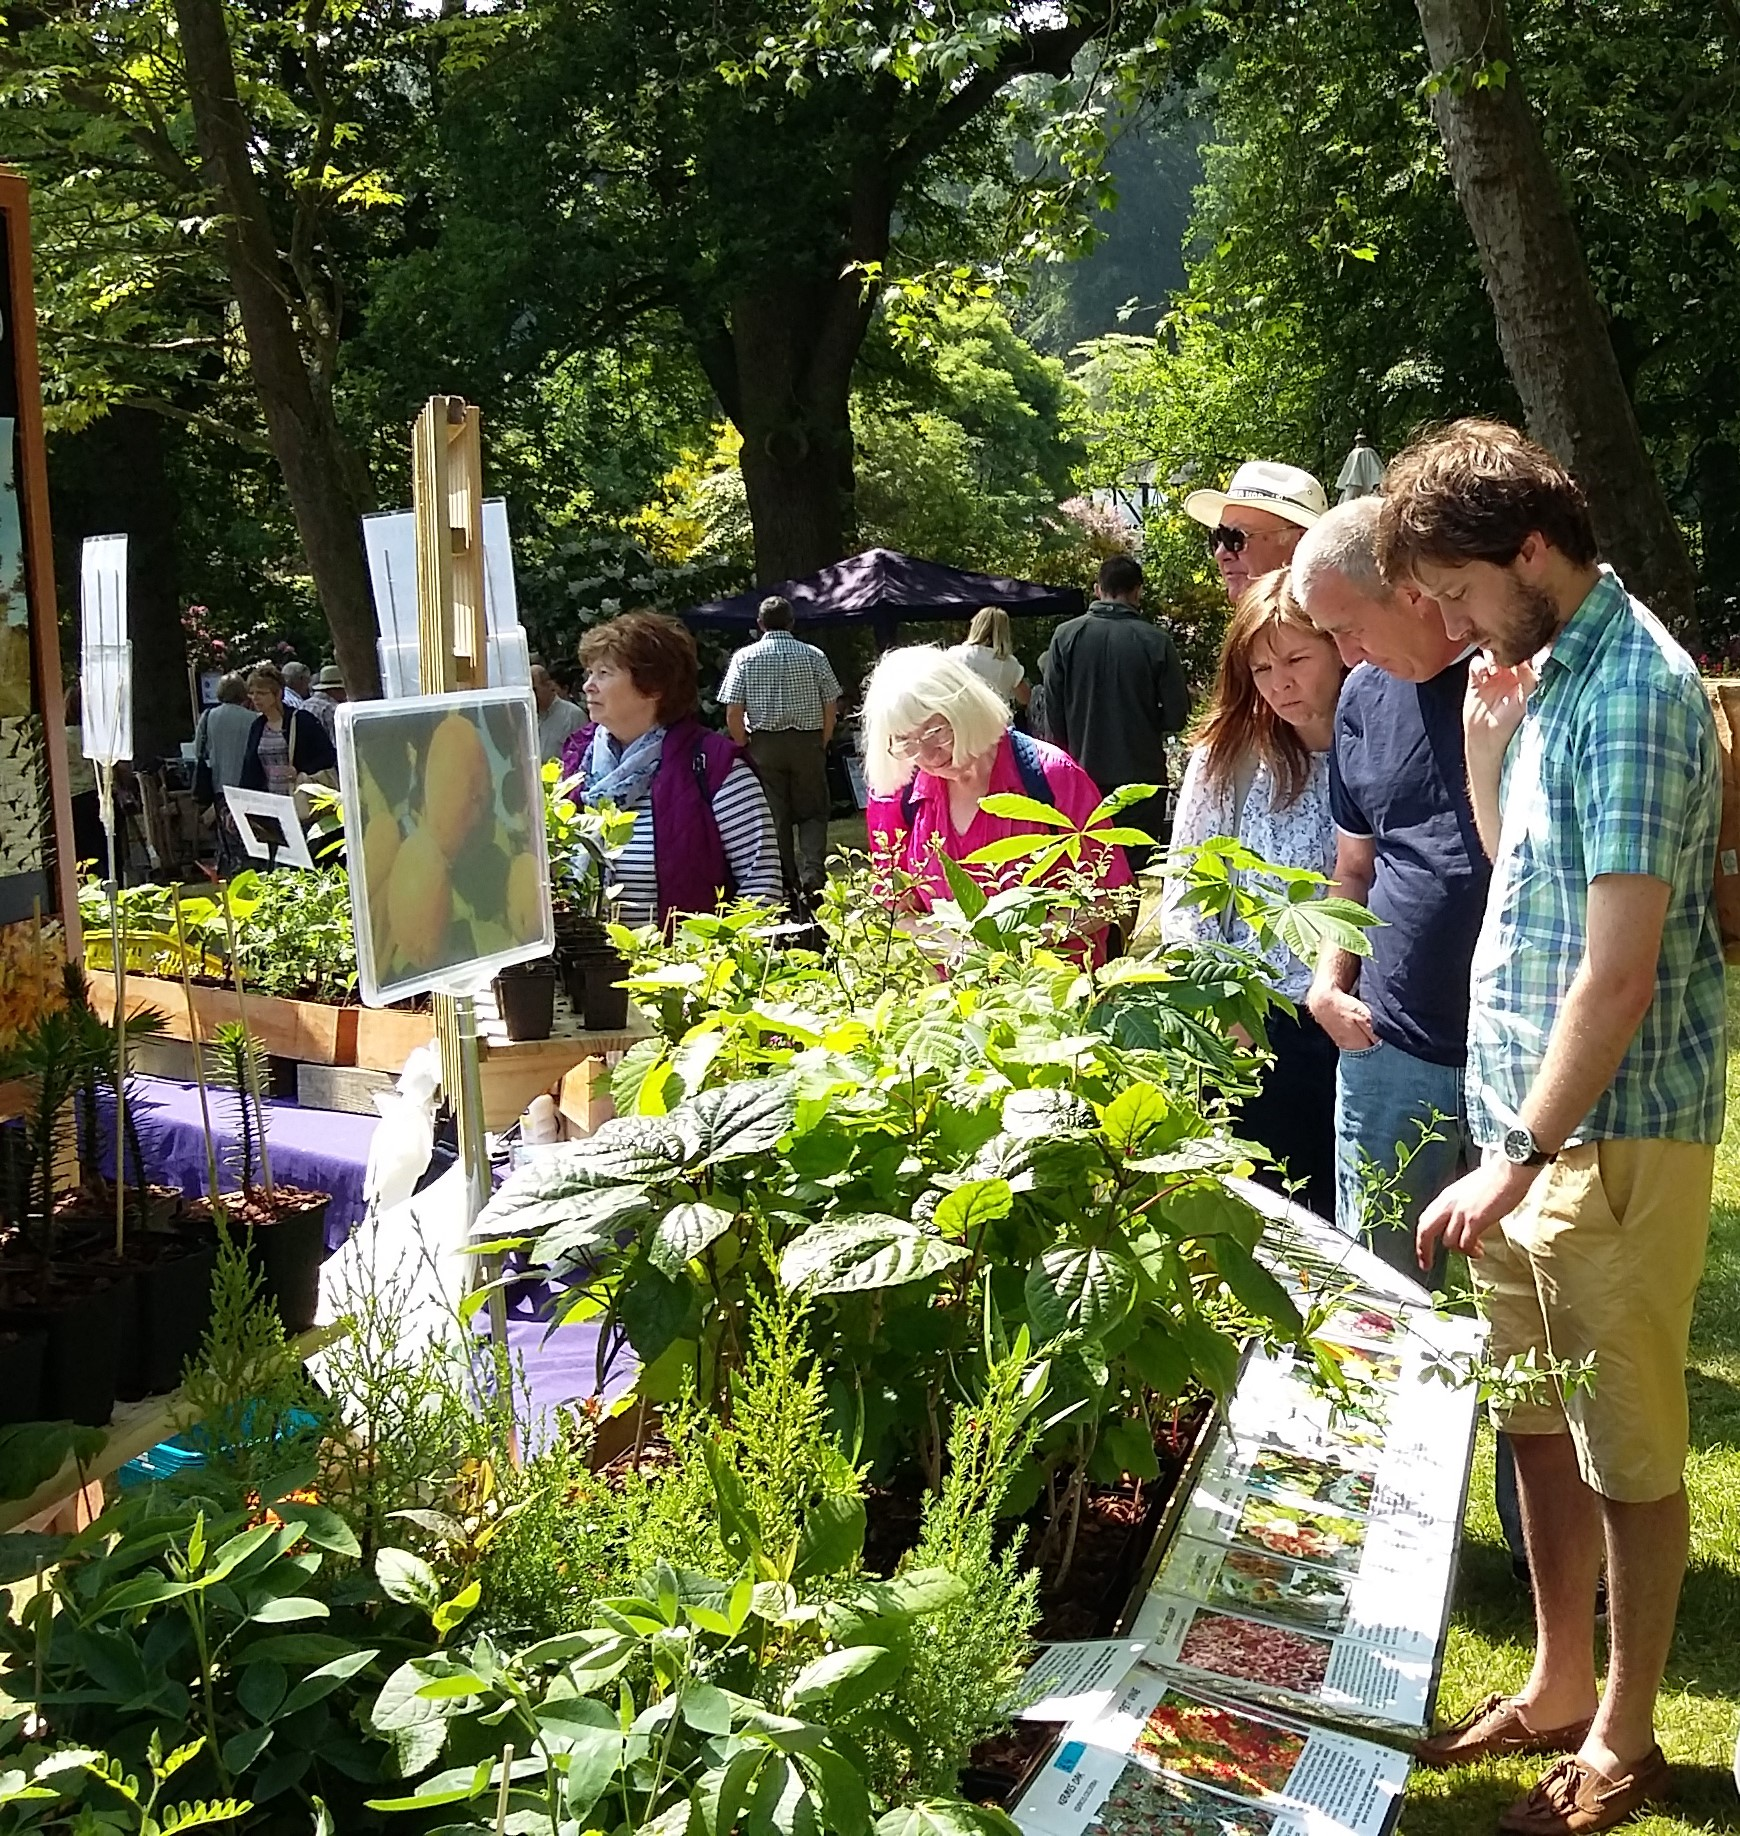 Plant Hunters' Fair at Arley Arboretum, Worcestershire on Saturday 19th May 2018